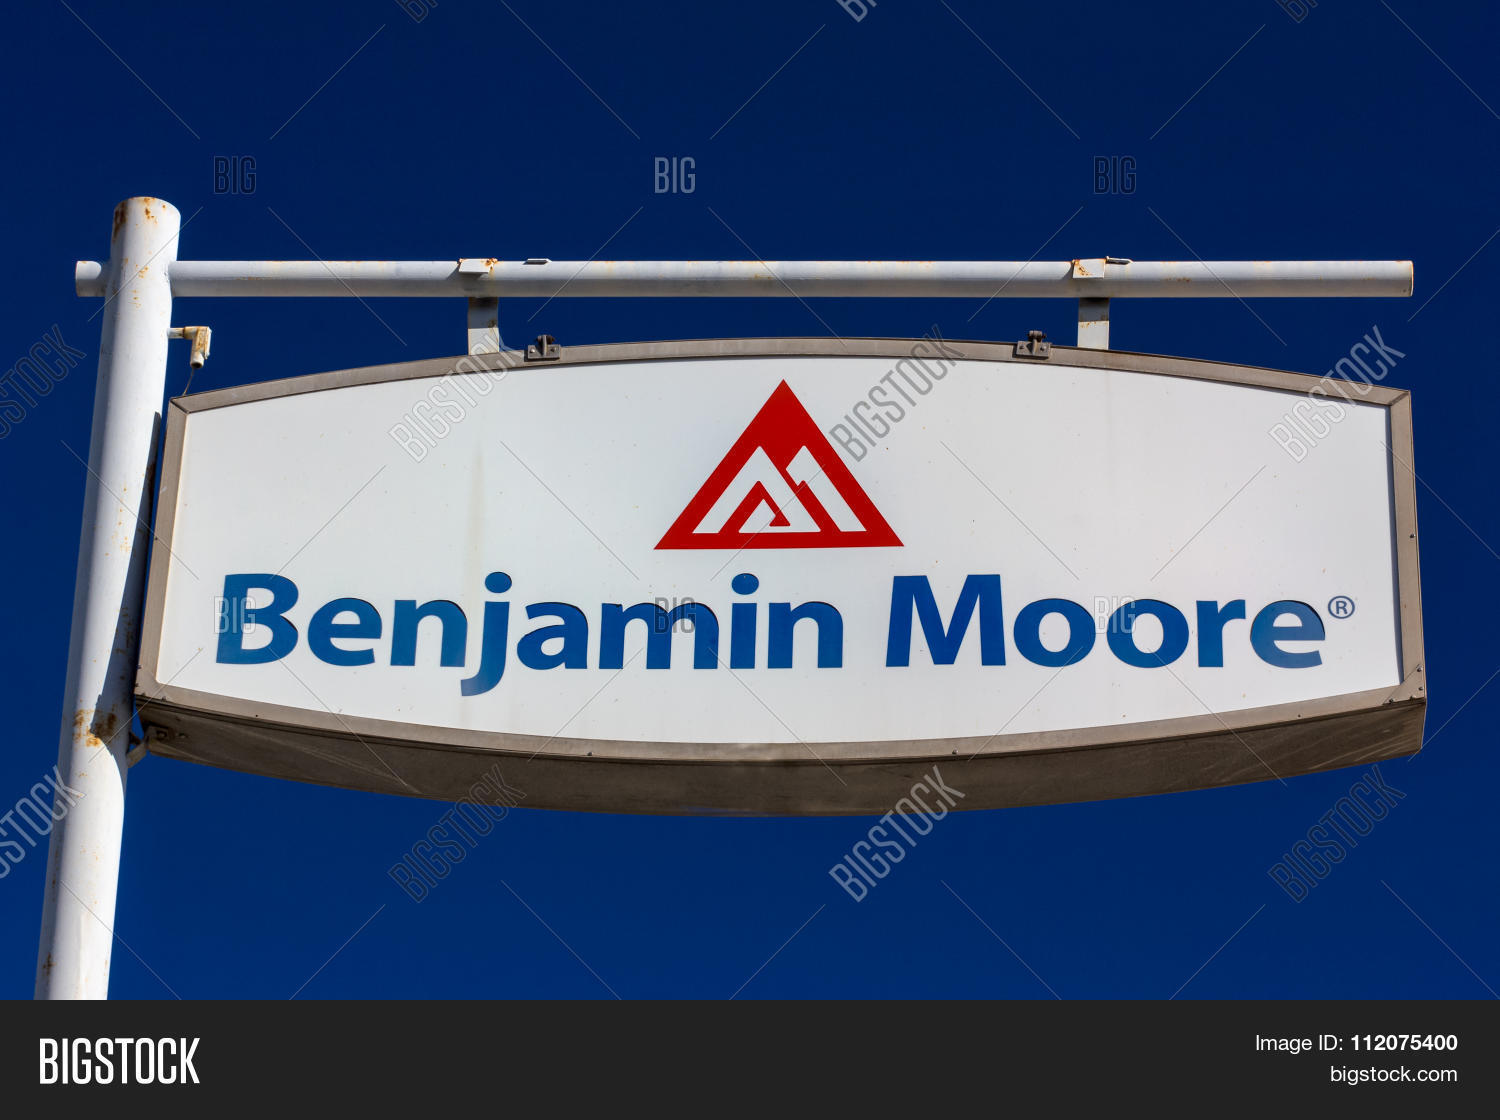 benjamin moore paint store logo and sign stock photo & stock